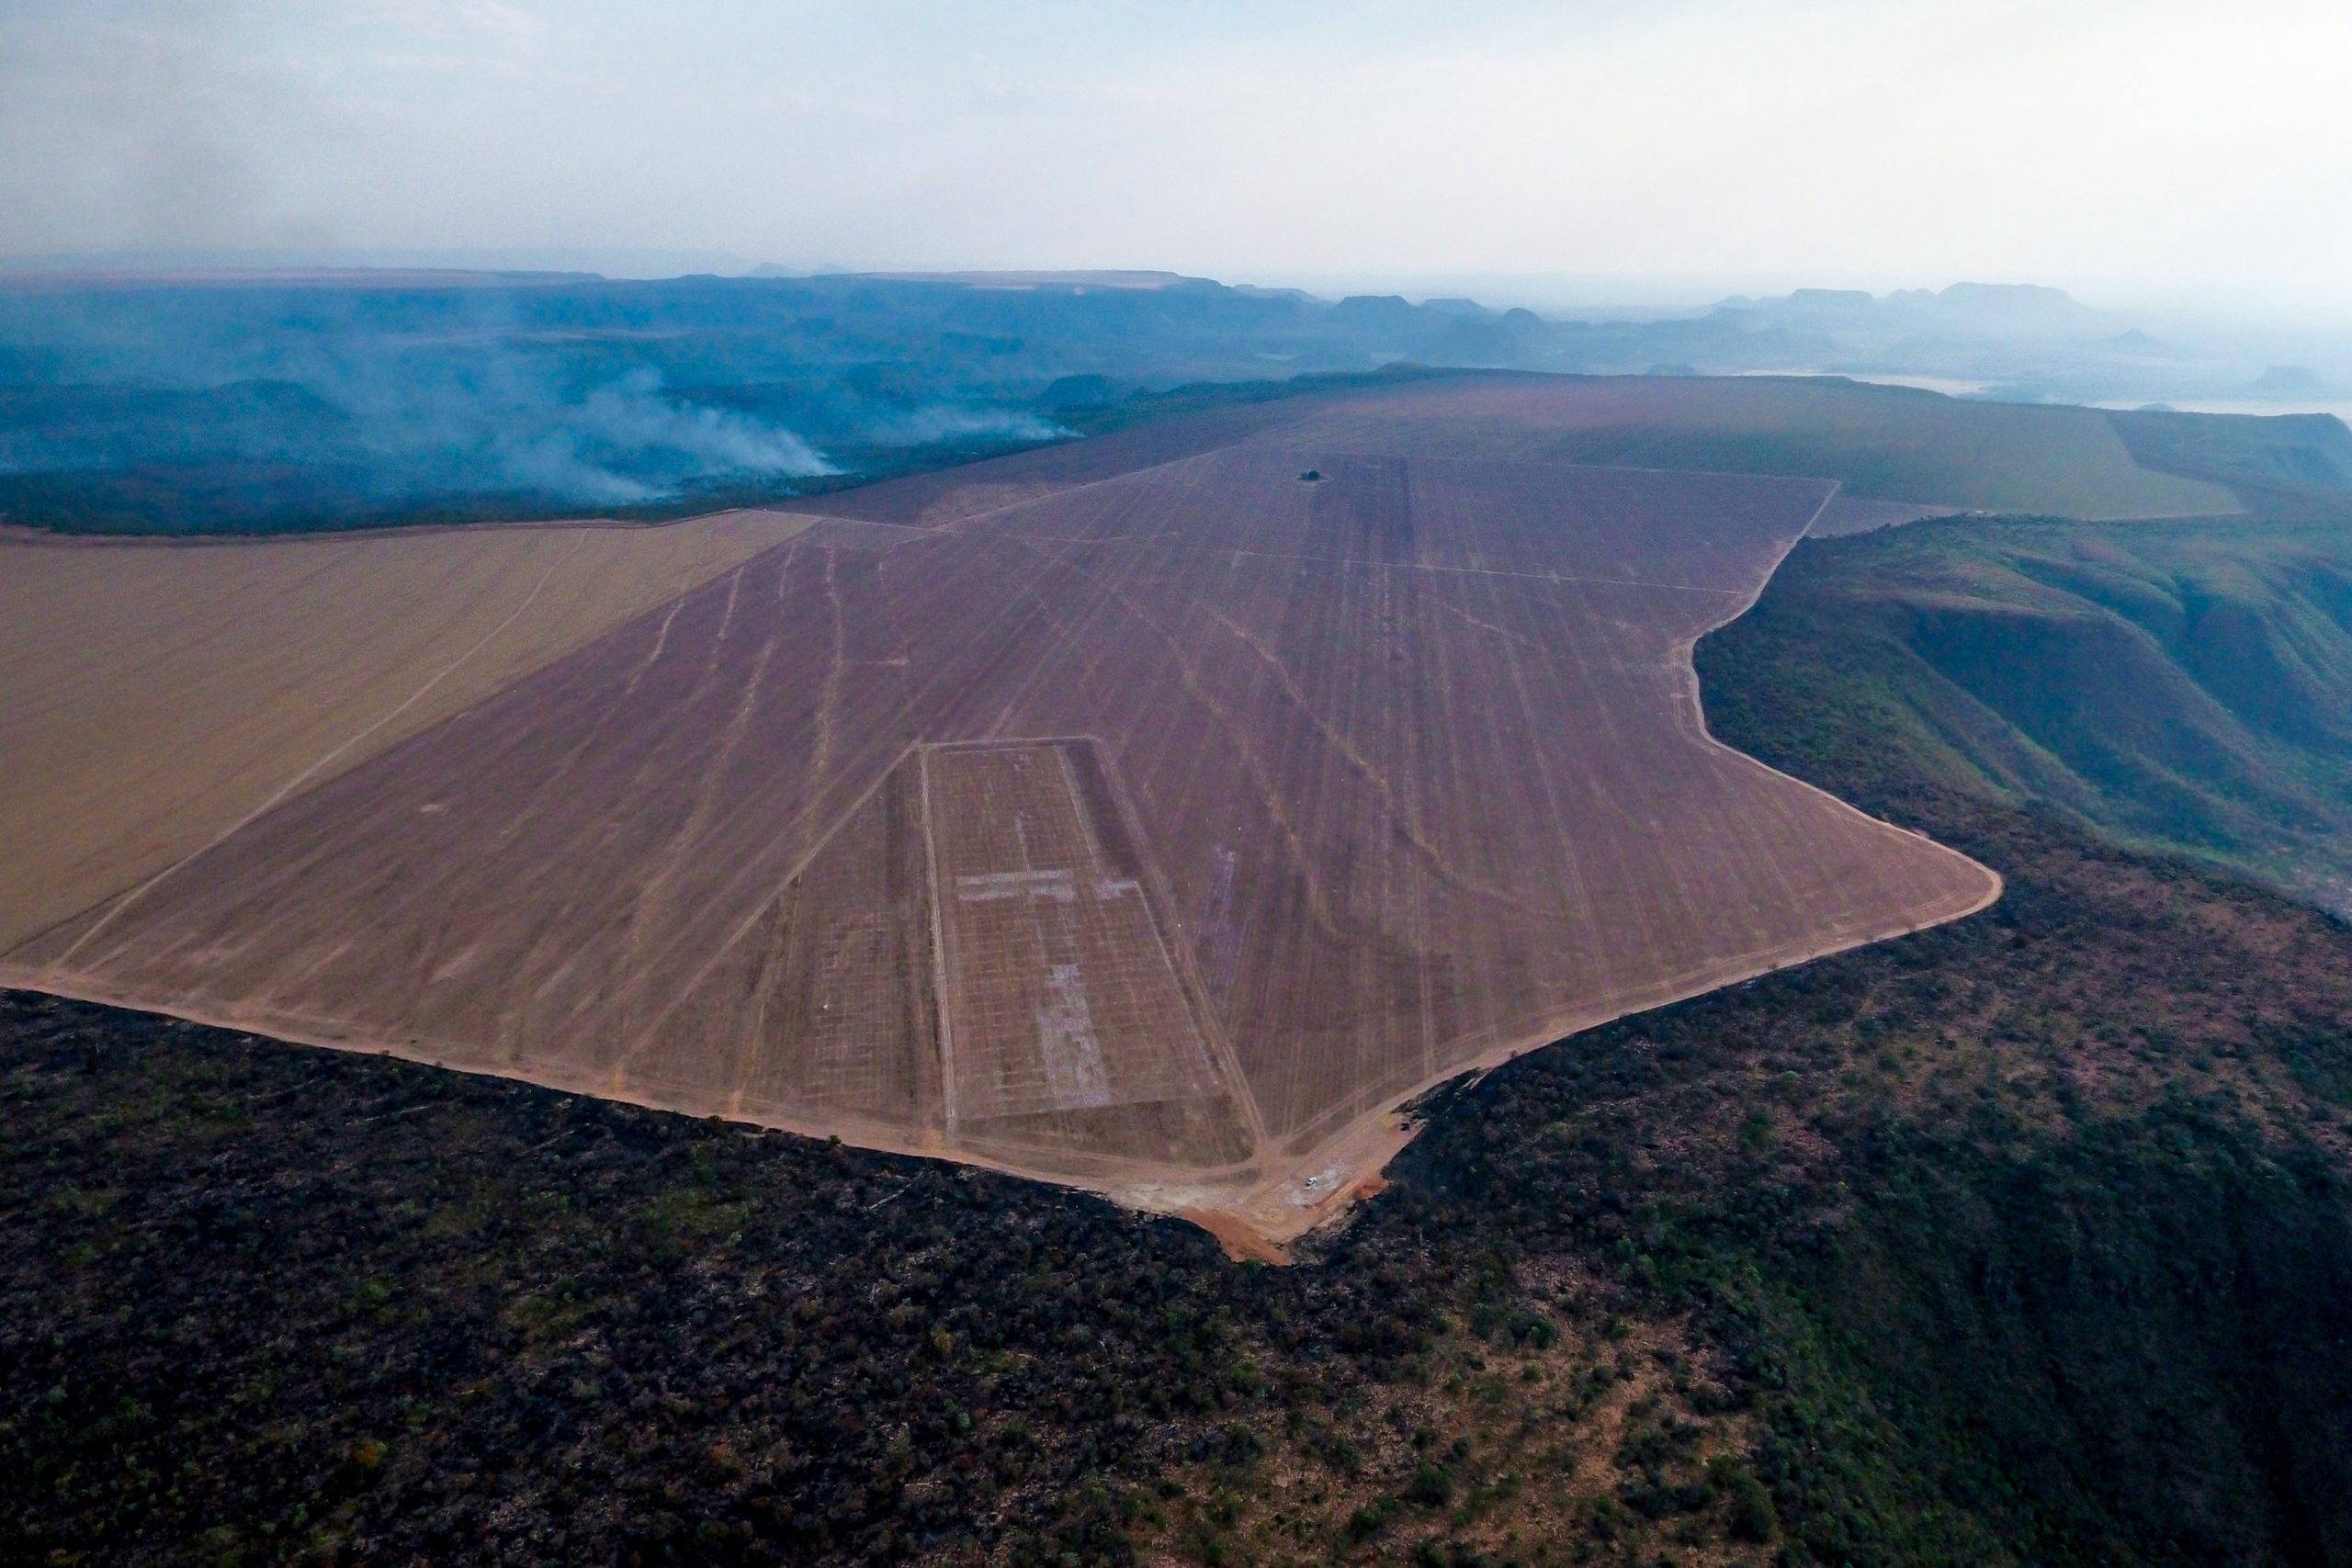 Harvard and TIAA's farmland grab in Brazil goes up in smoke